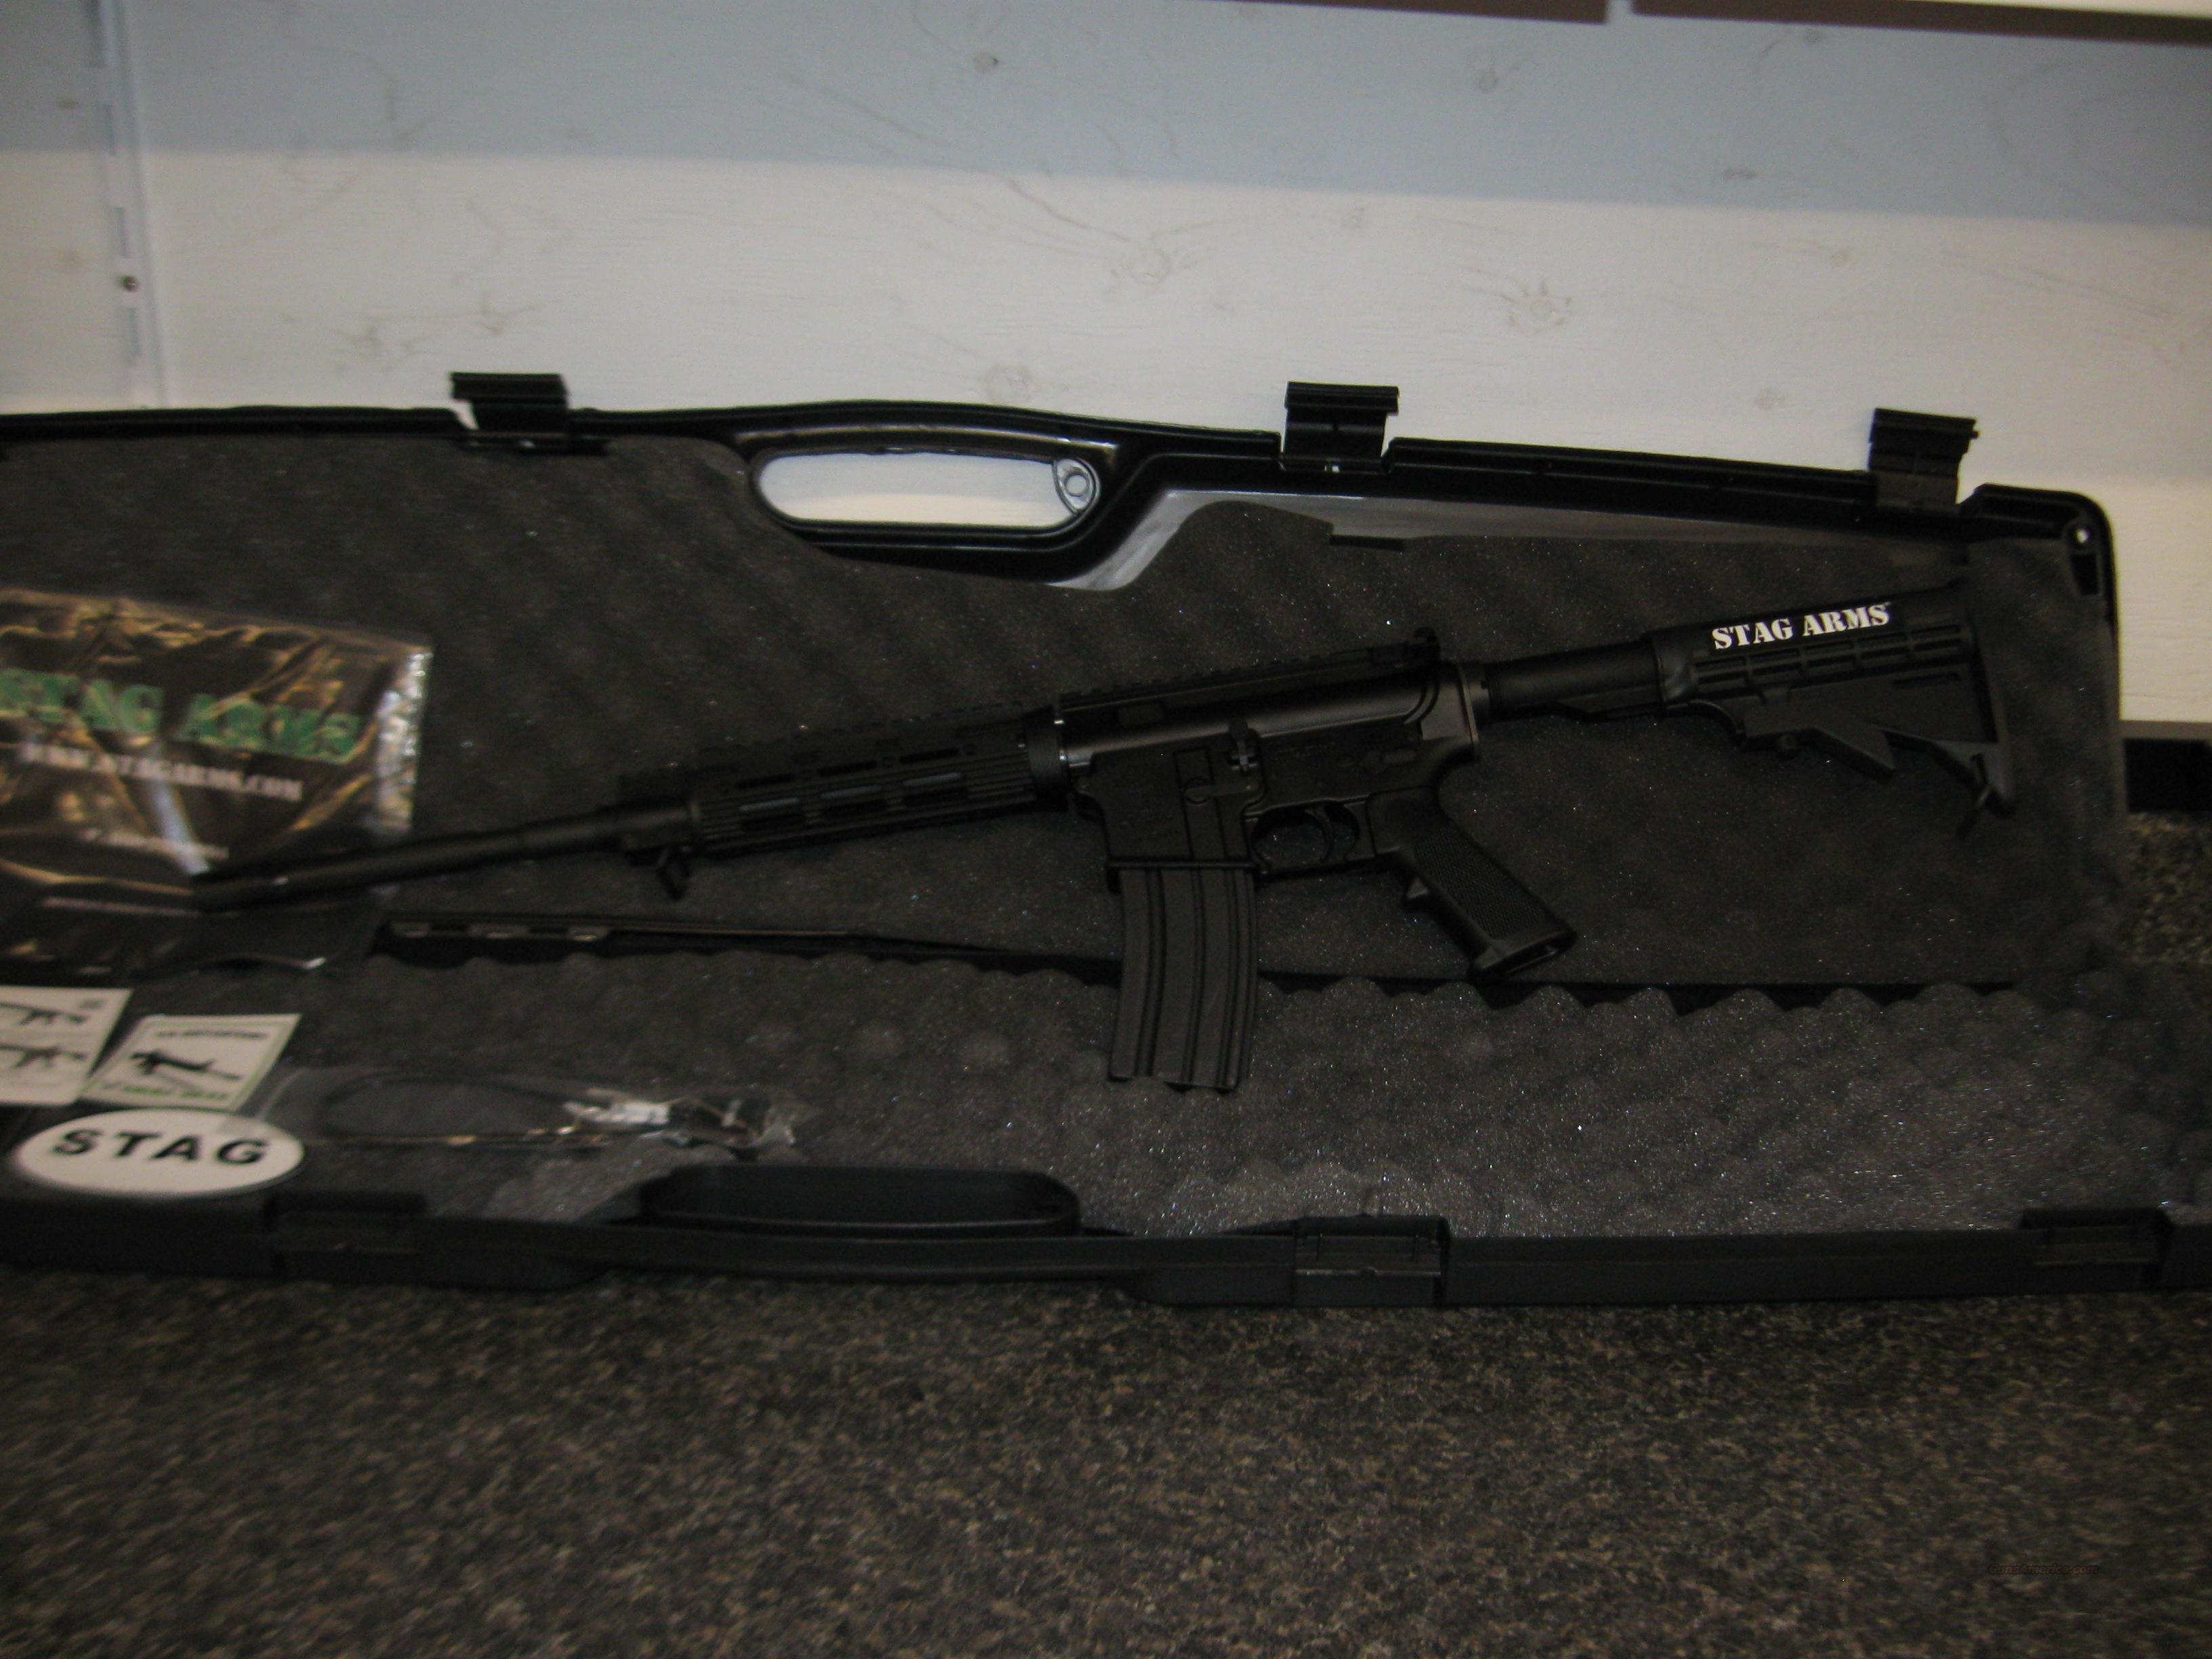 Stag Arms Model 3 AR15, 5.56mm/.223, 30 Rd. magazine  Guns > Rifles > Stag Arms > Complete Rifles